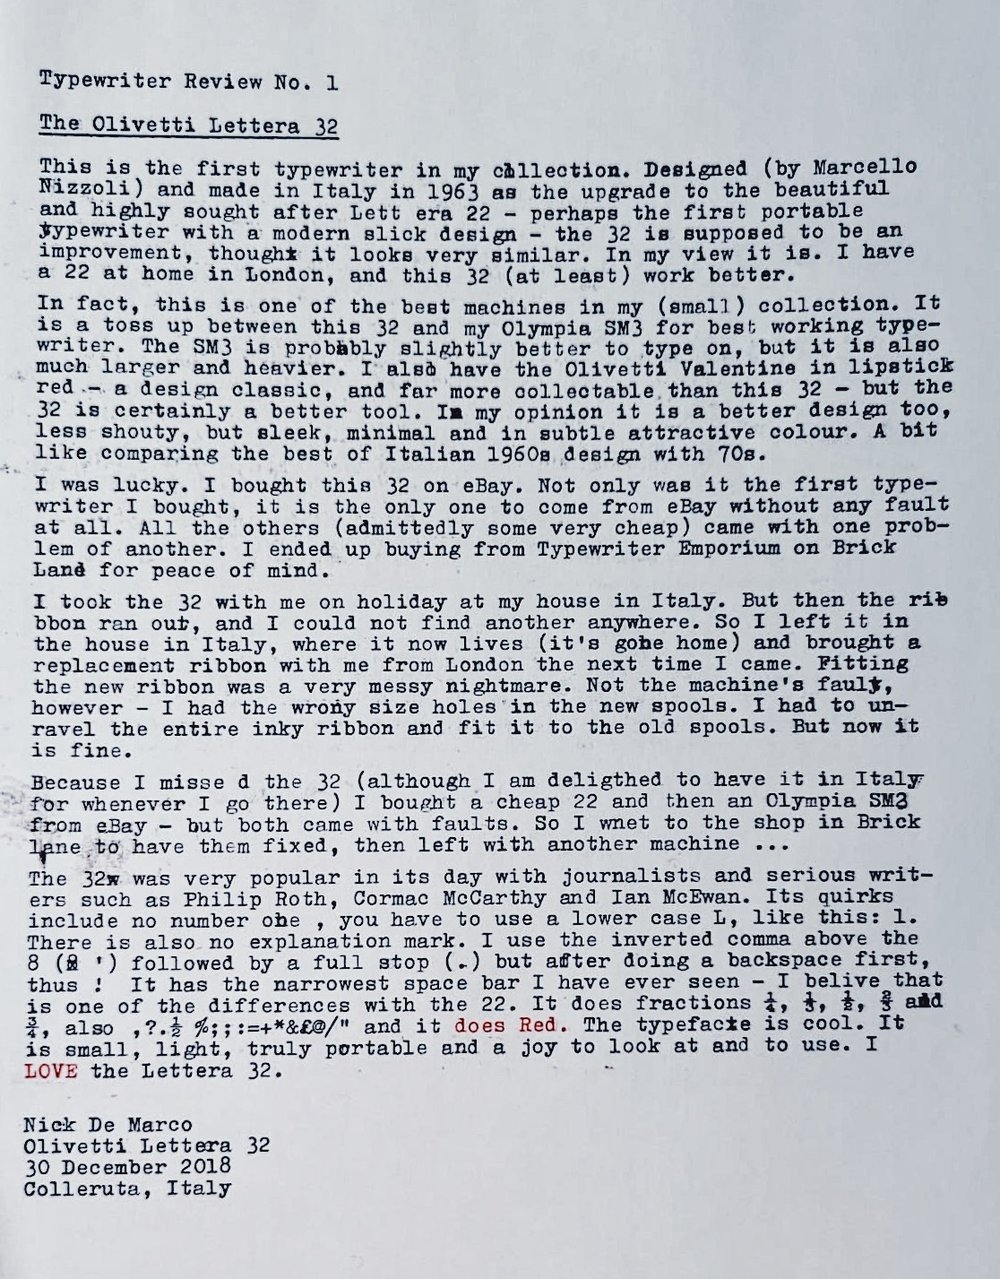 Nick De Marco's review of his Olivetti Letter 32, on the Olivetti Lettera 32